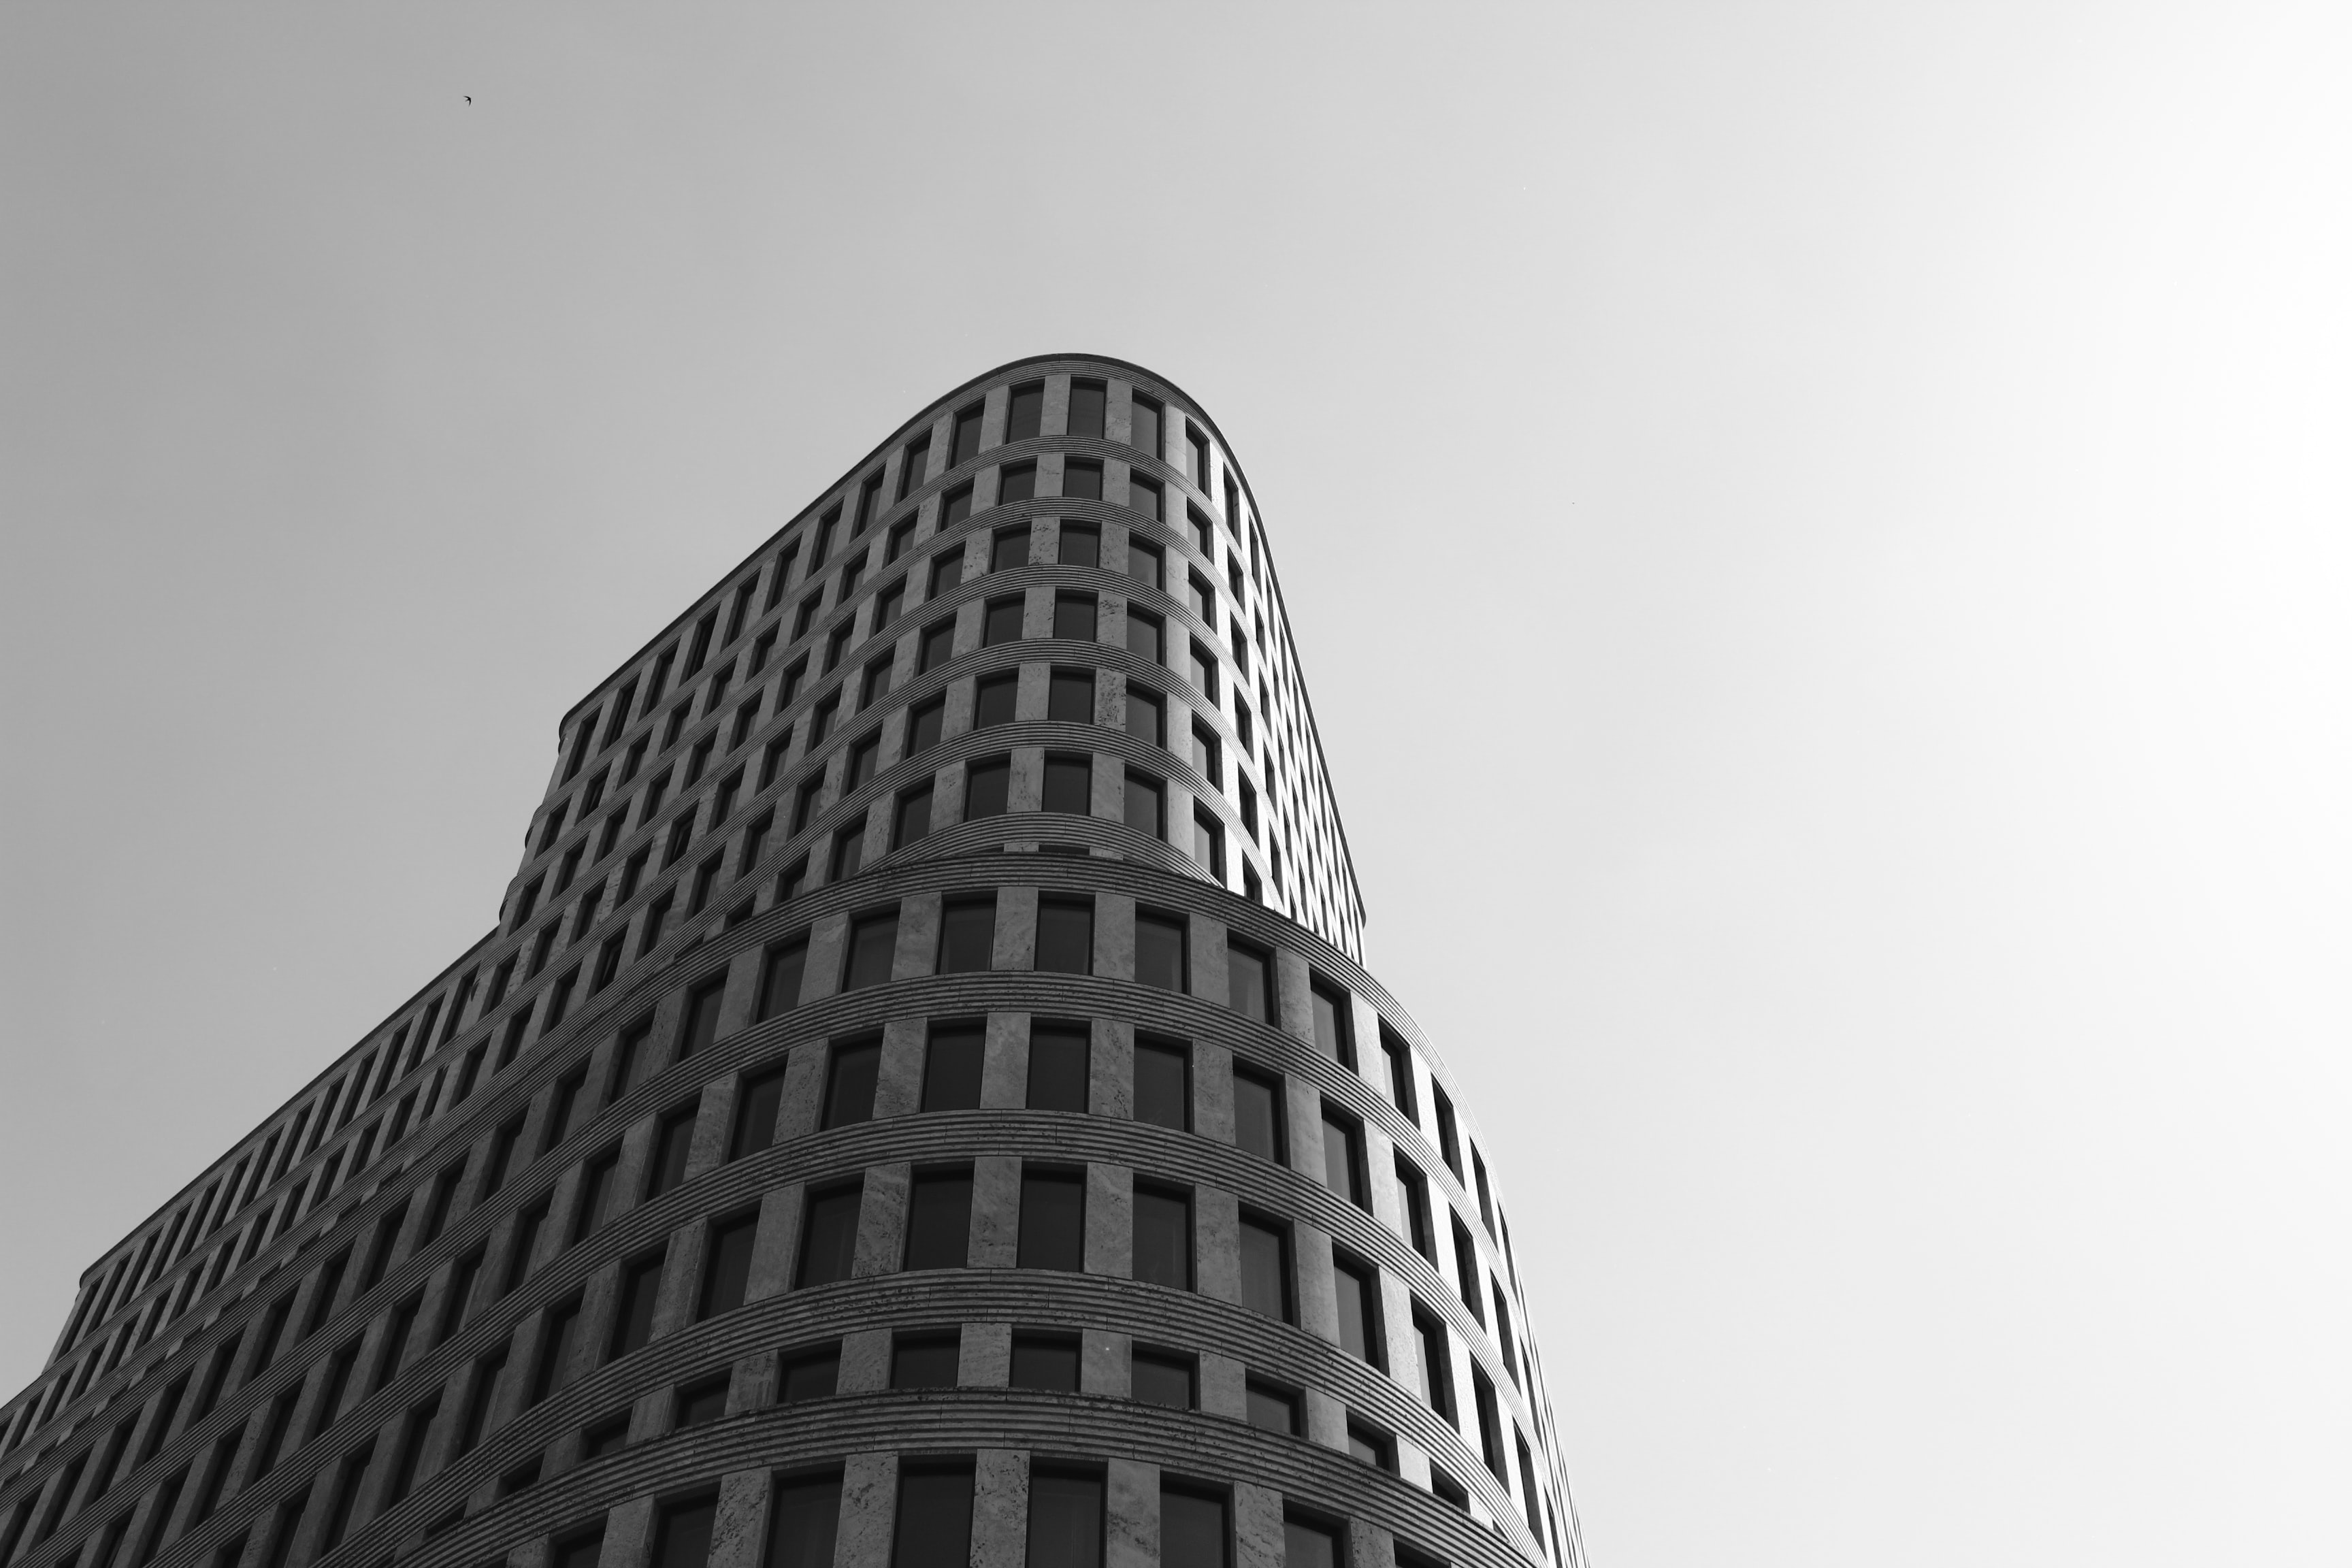 grayscale photo of concrete high-rise building under skies